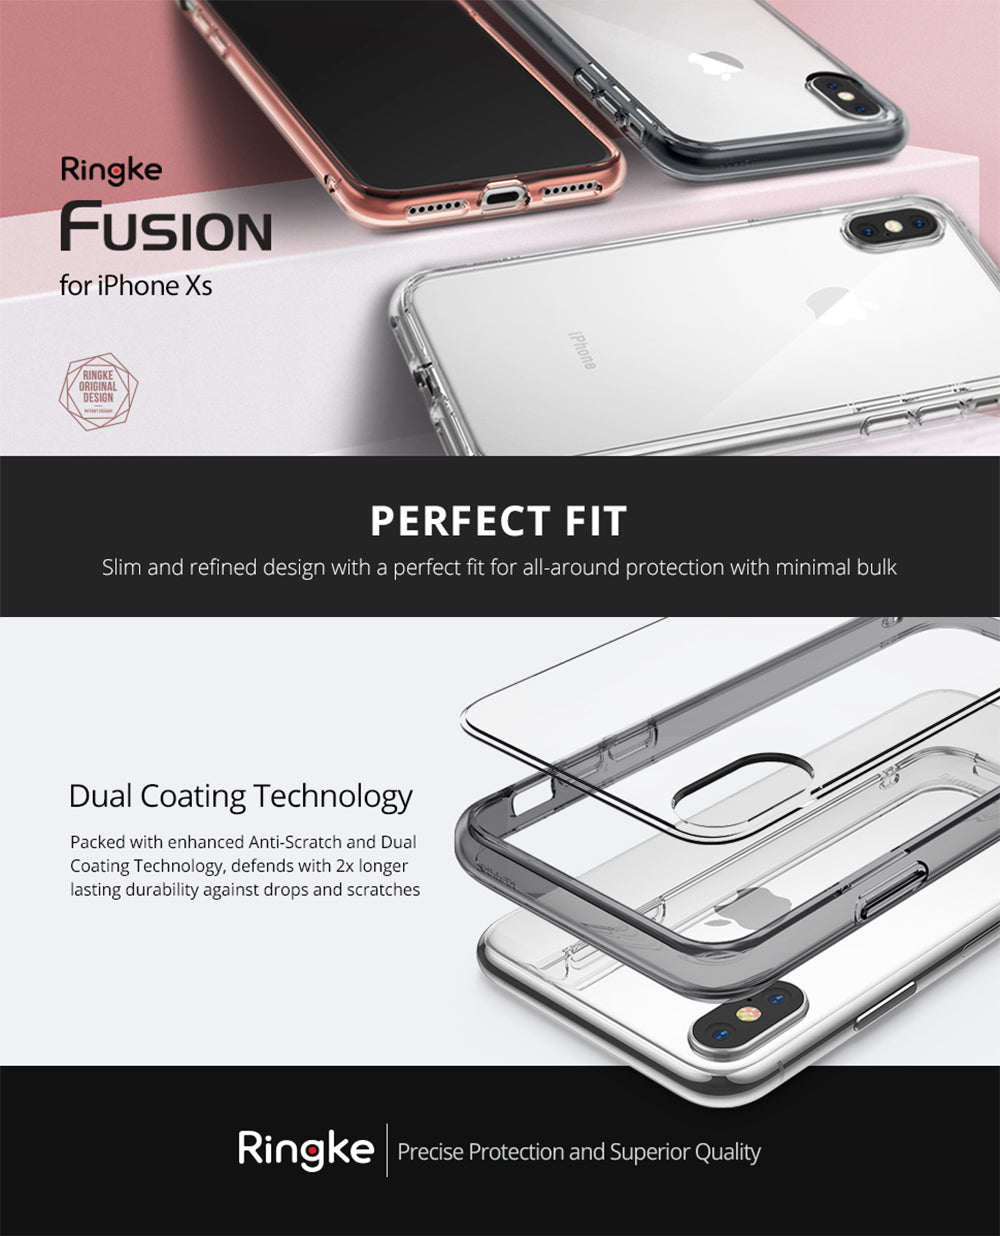 ringke fusion case designed for iphone xs